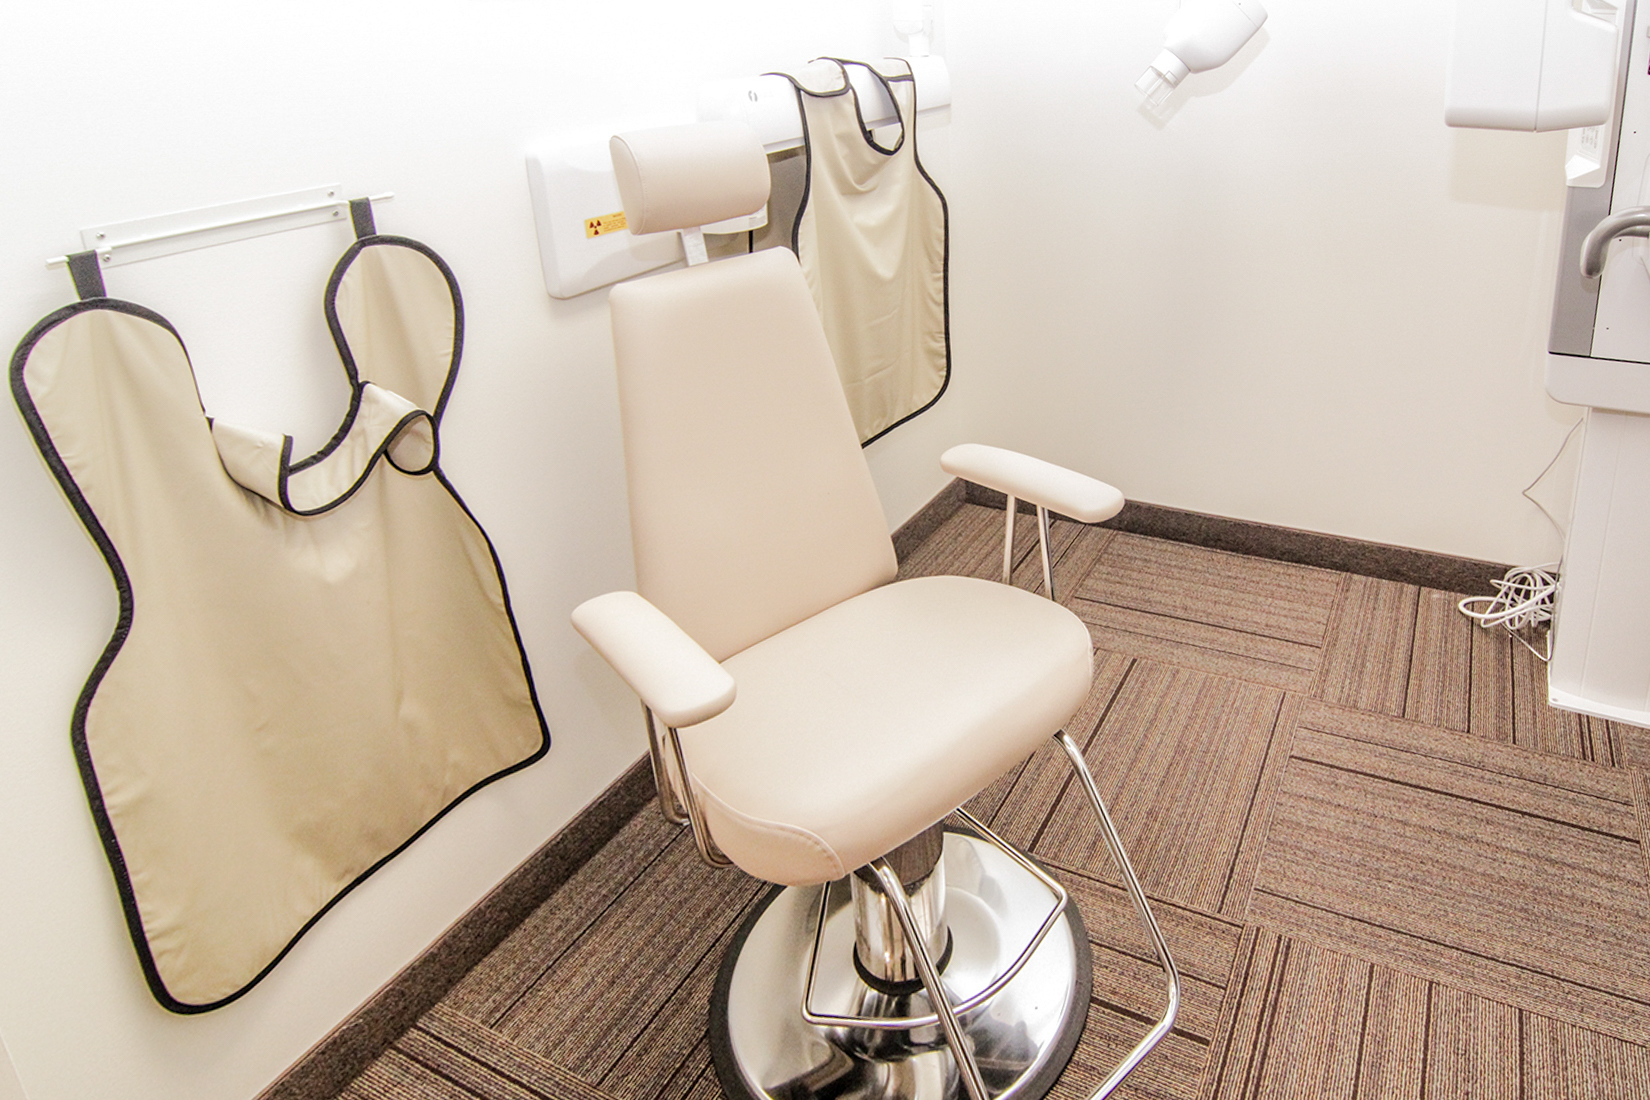 Donelson Smiles Dentistry image 5